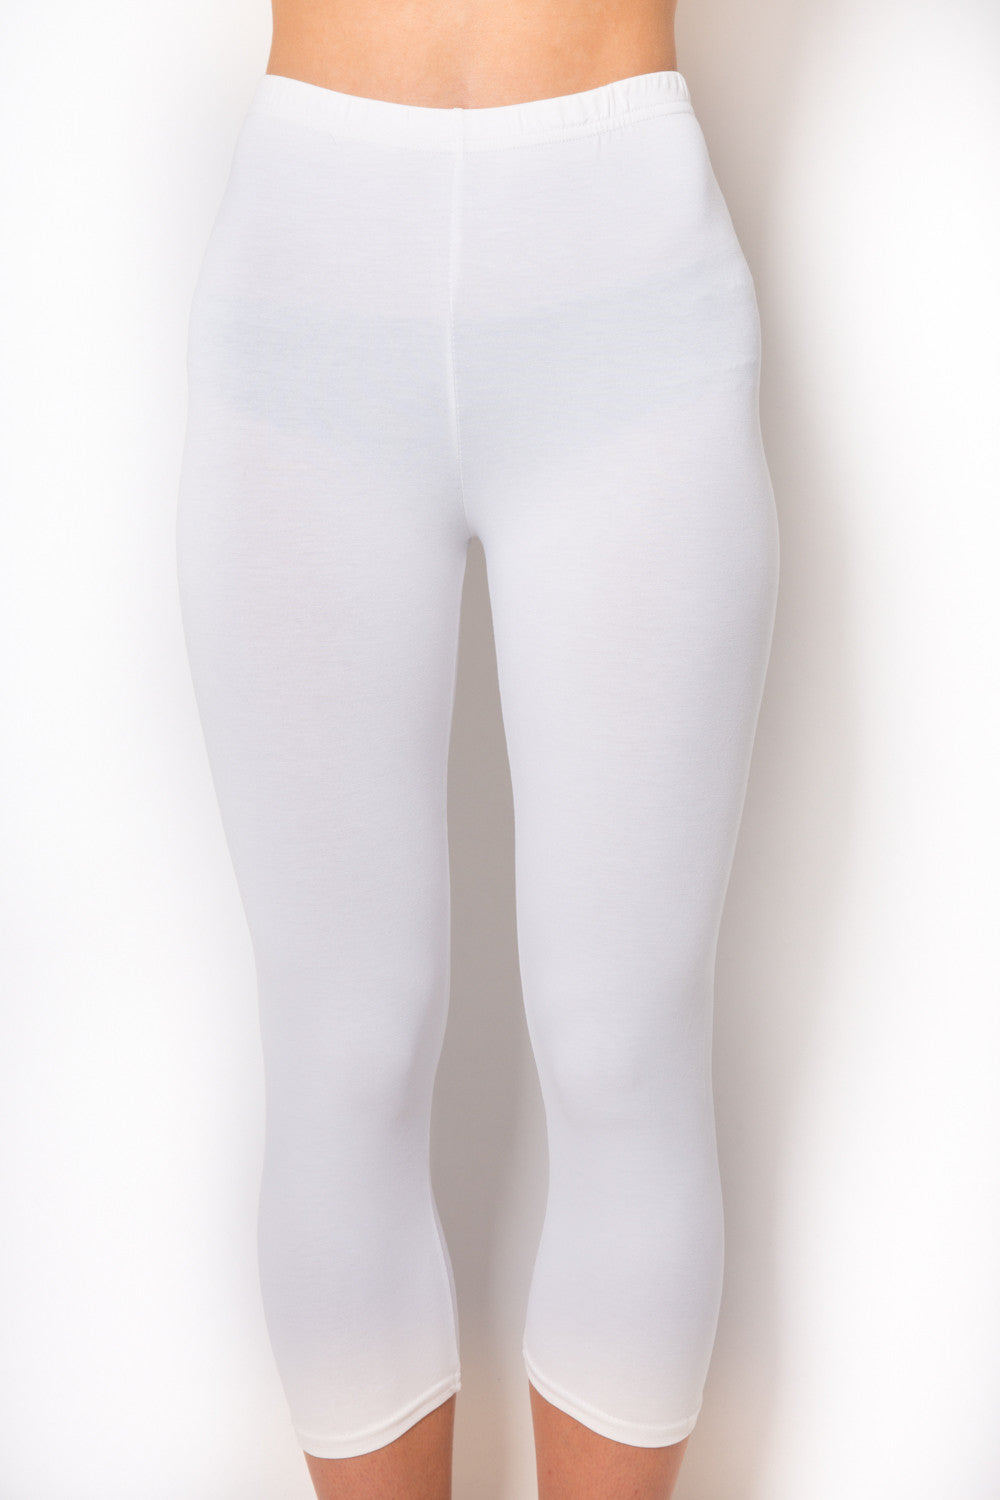 RENDEZVOUS WHITE JENNY CROPPED LEGGINGS